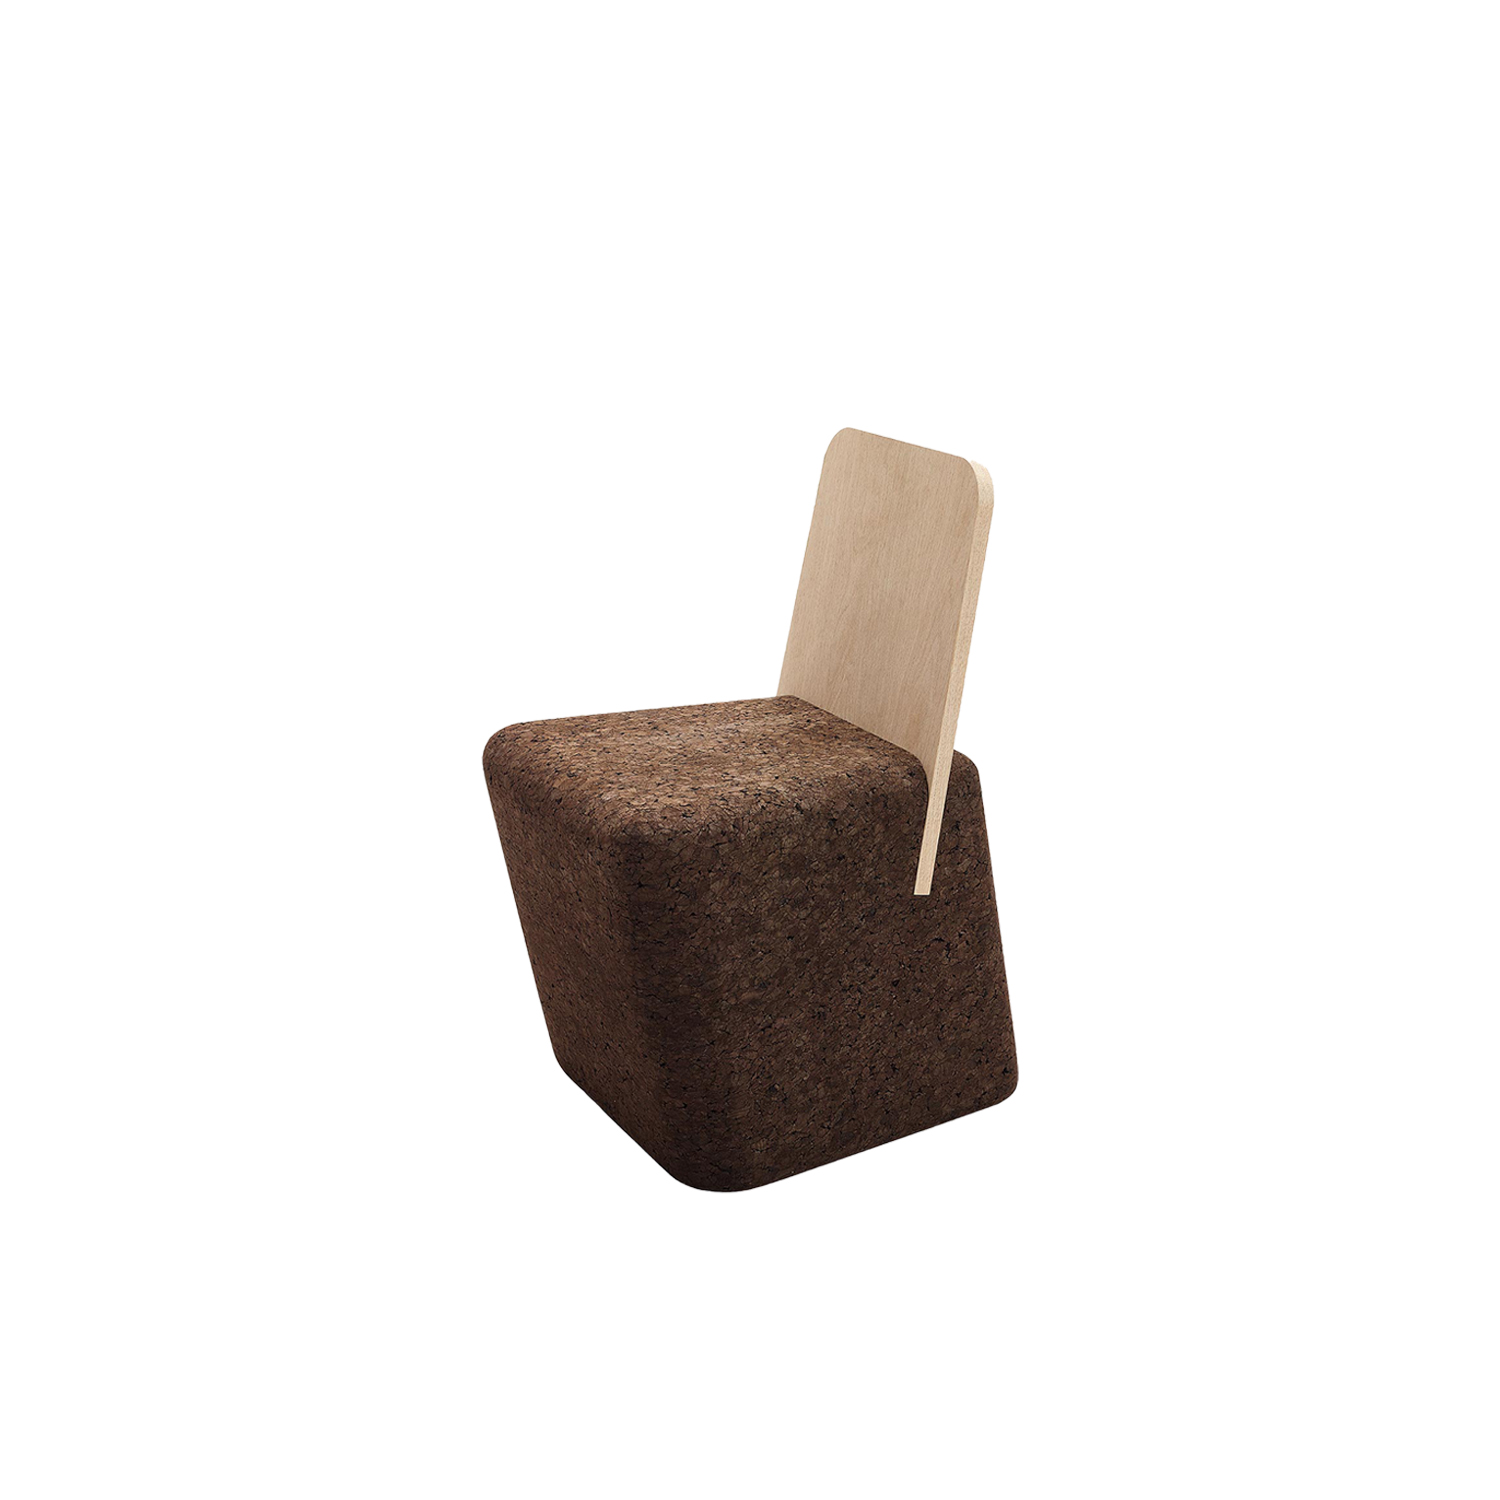 """Cut Chair - It is only used cork of the branches (falca) for the manufacture of cork granules. These are block clusters in autoclave, being 100% natural process, without use of additives. Technology, developed by Sofalca, consists of injecting water vapour through the pallets that will expand and agglutinate with the resins of the cork itself. This """"cooking"""" gives also dark colour to the agglomerated cork, like chocolate. In the production of steam I used biomass, obtained on milling and cleaning the falca, what makes it truly ecological production and without waste, 95% energy self-sufficient. As a super-material, cork offers so many advantages, because in addition to its excellent thermic, acoustic insulation and anti vibration characteristic, it is also a CO2 sink playing a key-role in the environment. 